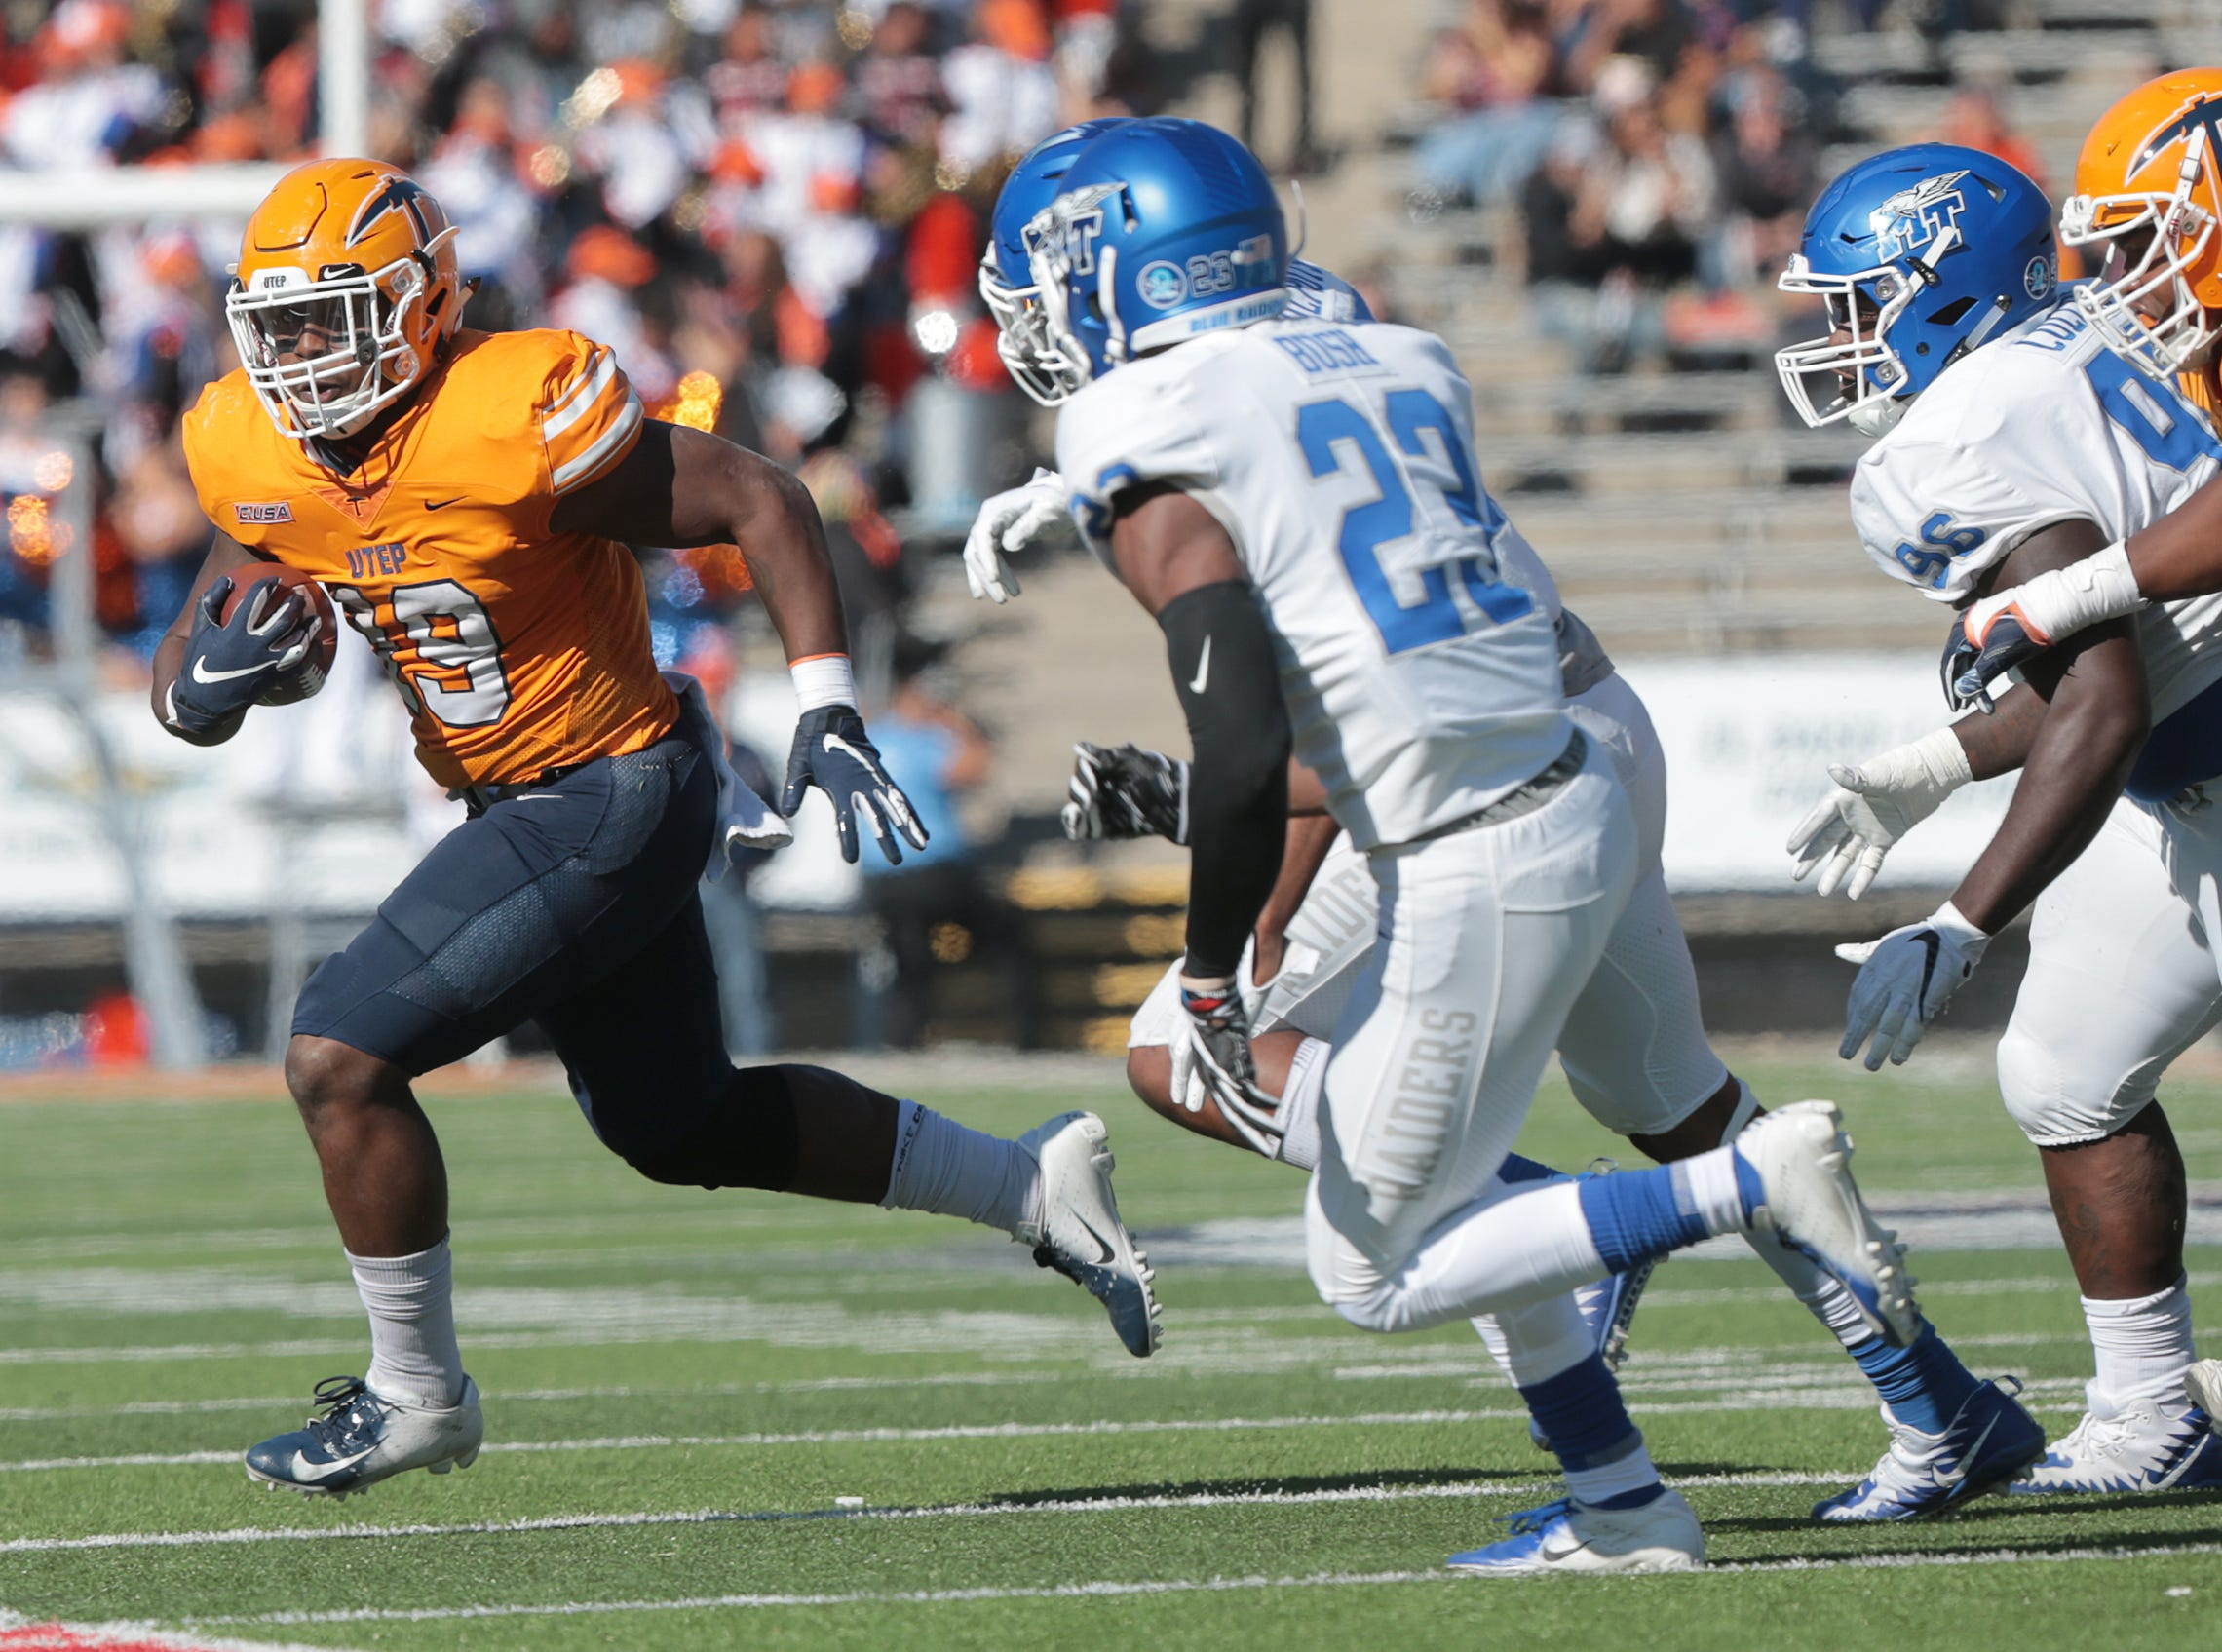 UTEP football had a chance to add a win this season with a visit Saturday from Middle Tennessee at Sun Bowl Stadium, but the Blue Raiders defeated the Miners 48-32.